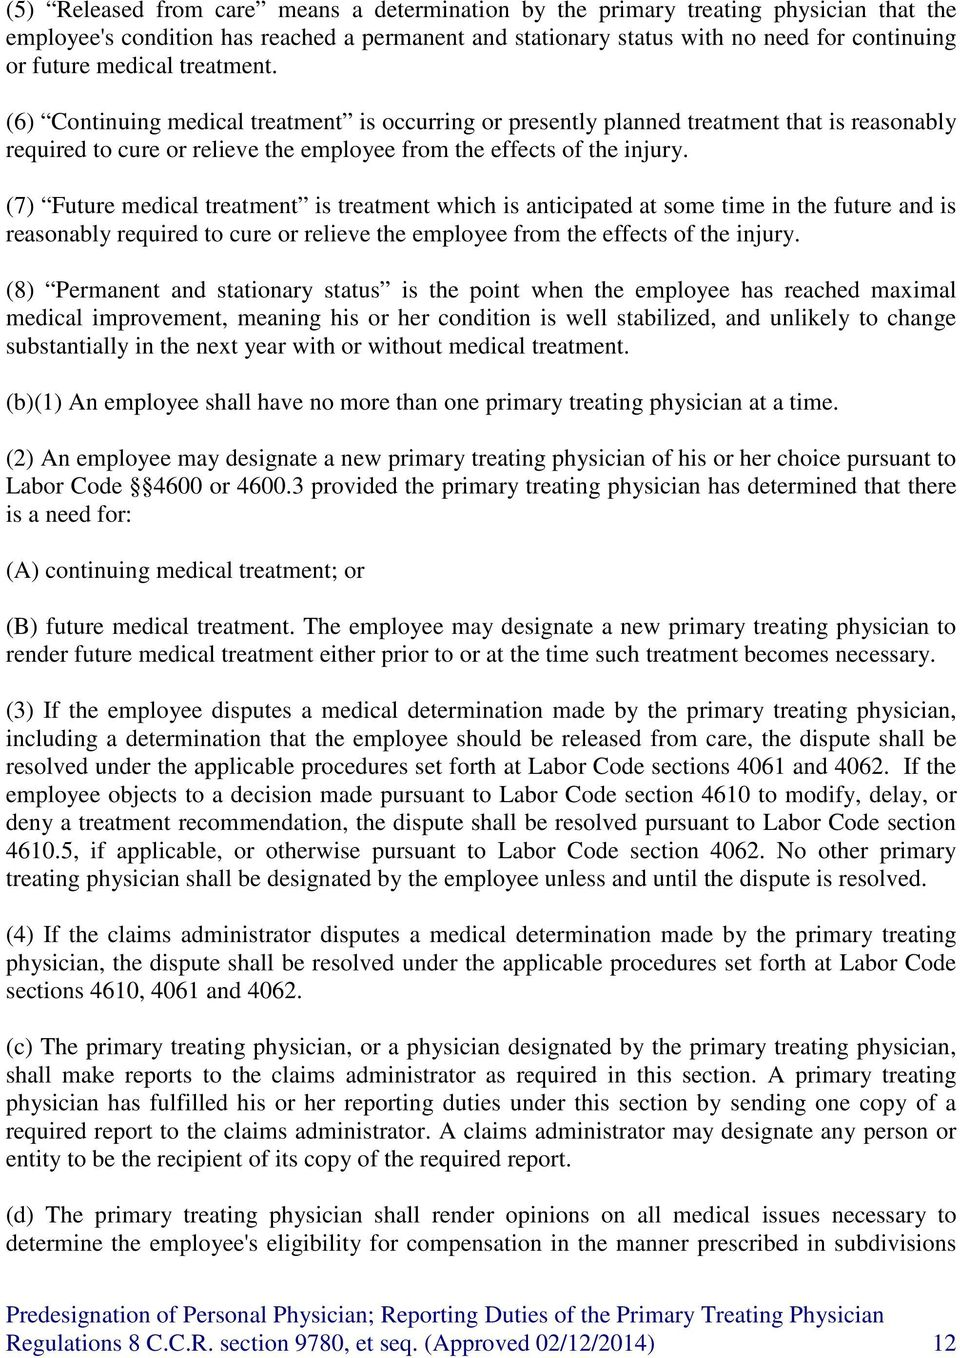 PREDESIGNATION OF PERSONAL PHYSICIANS AND REPORTING DUTIES OF THE